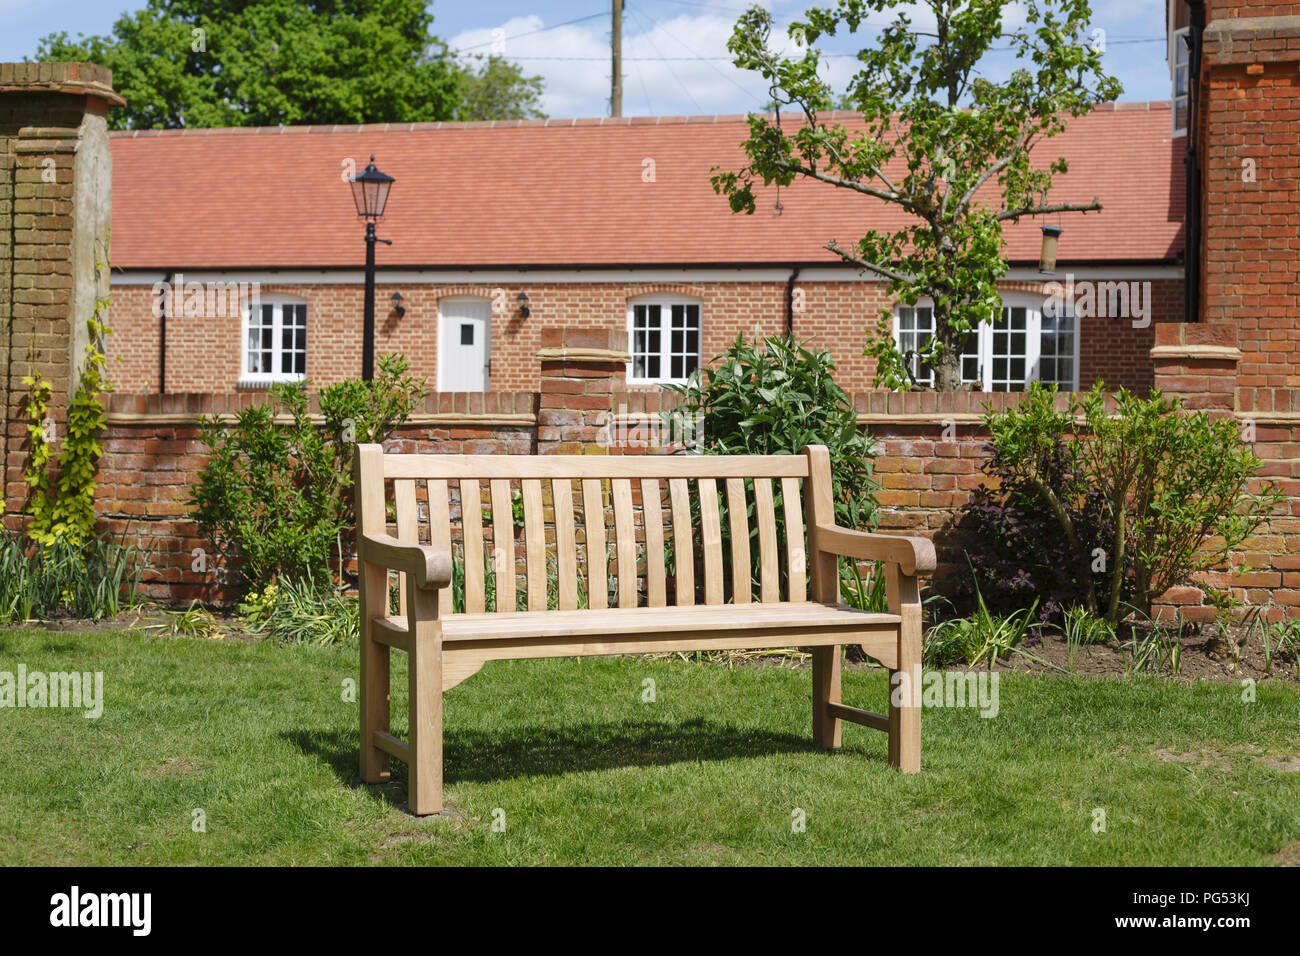 Teak hardwood bench on a lawn in an English garden with historic Victorian home in the background - Stock Image